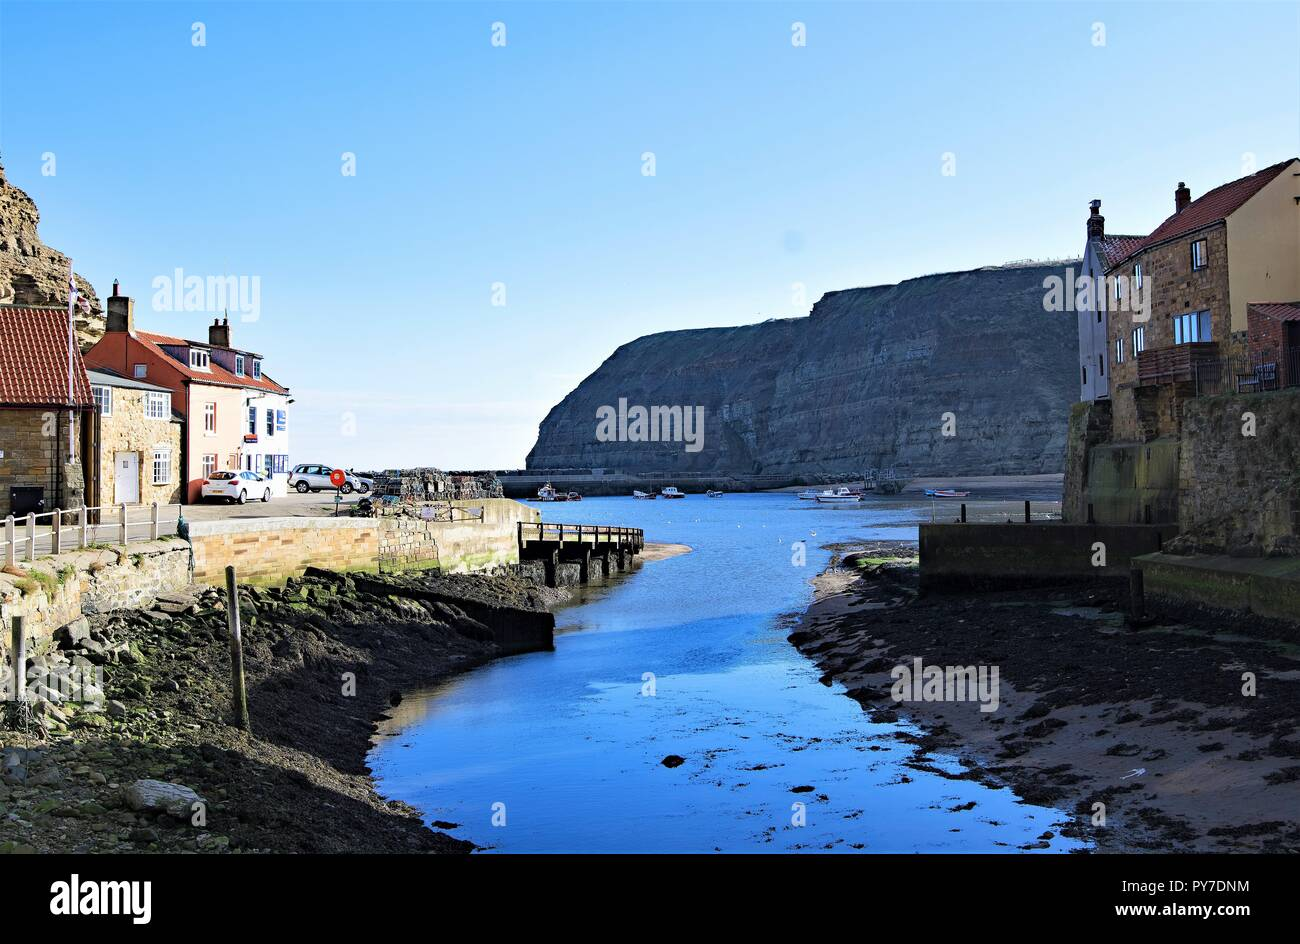 Taken to capture beautiful colourations, during a remarkably sunny day in late Autumn, within the North Yorkshire fishing village, of Staithes. - Stock Image